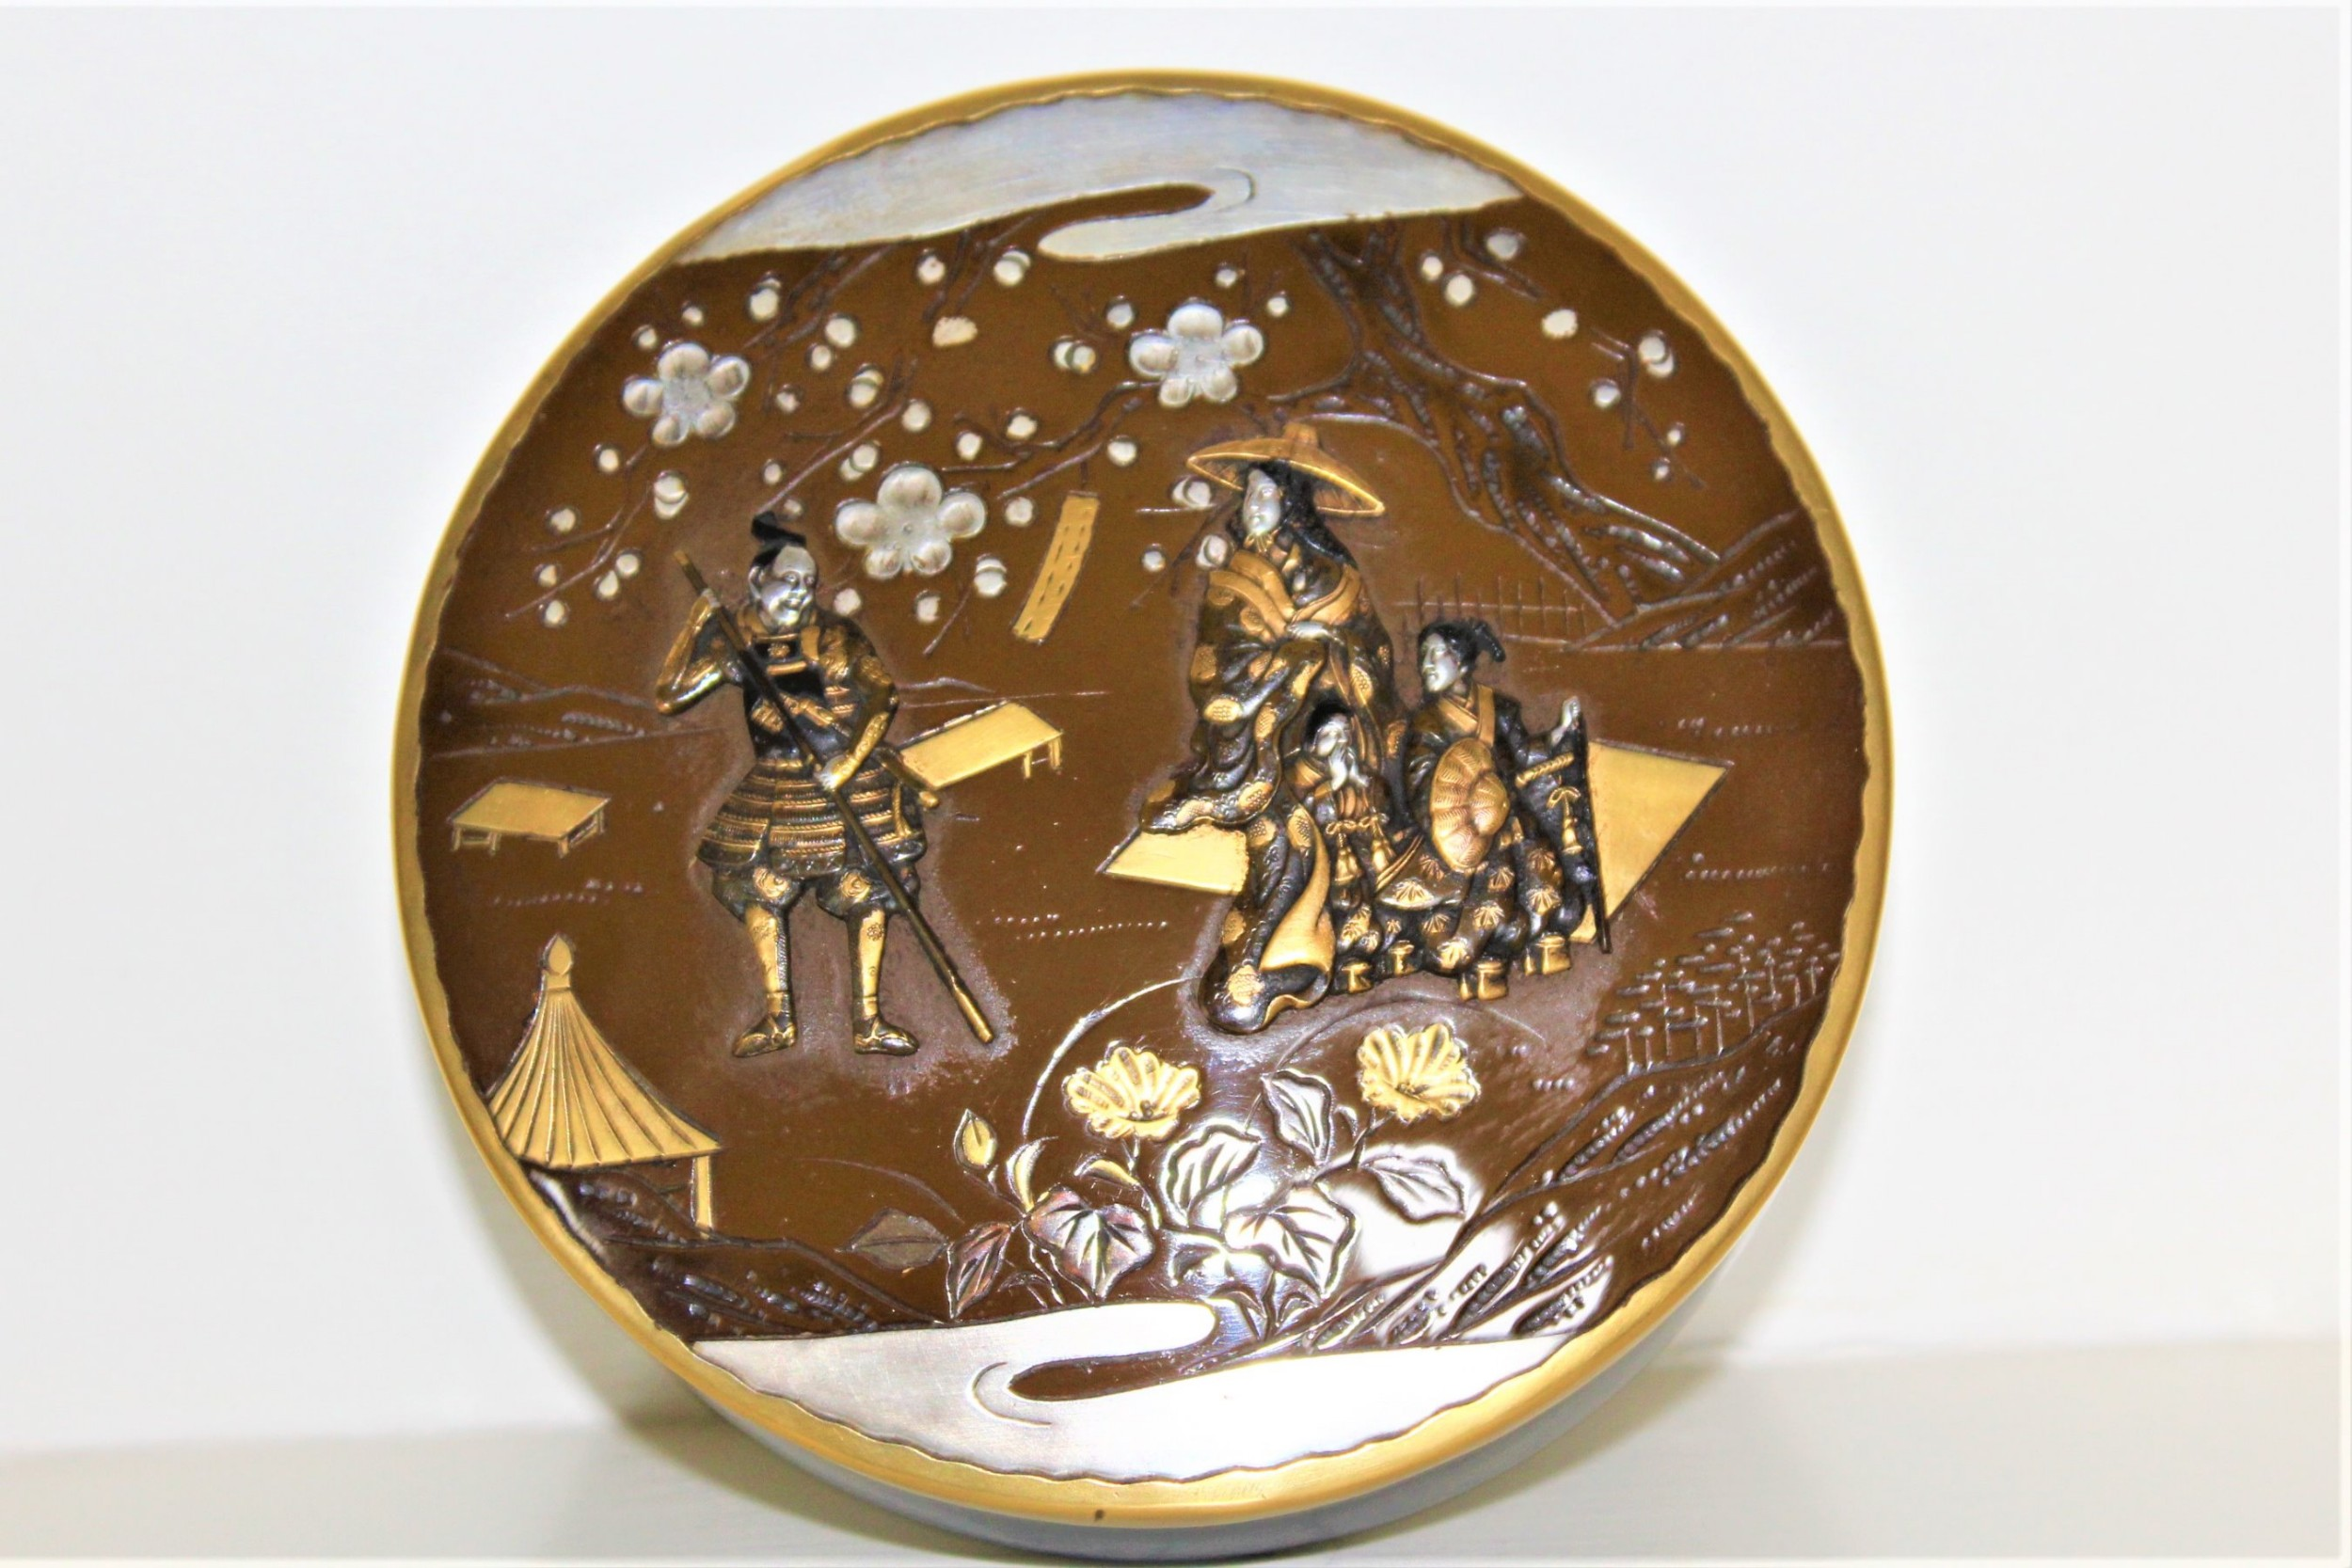 a fine large japanese circular bronze box the lid is finely worked with mixed metal of silver gold and bronze